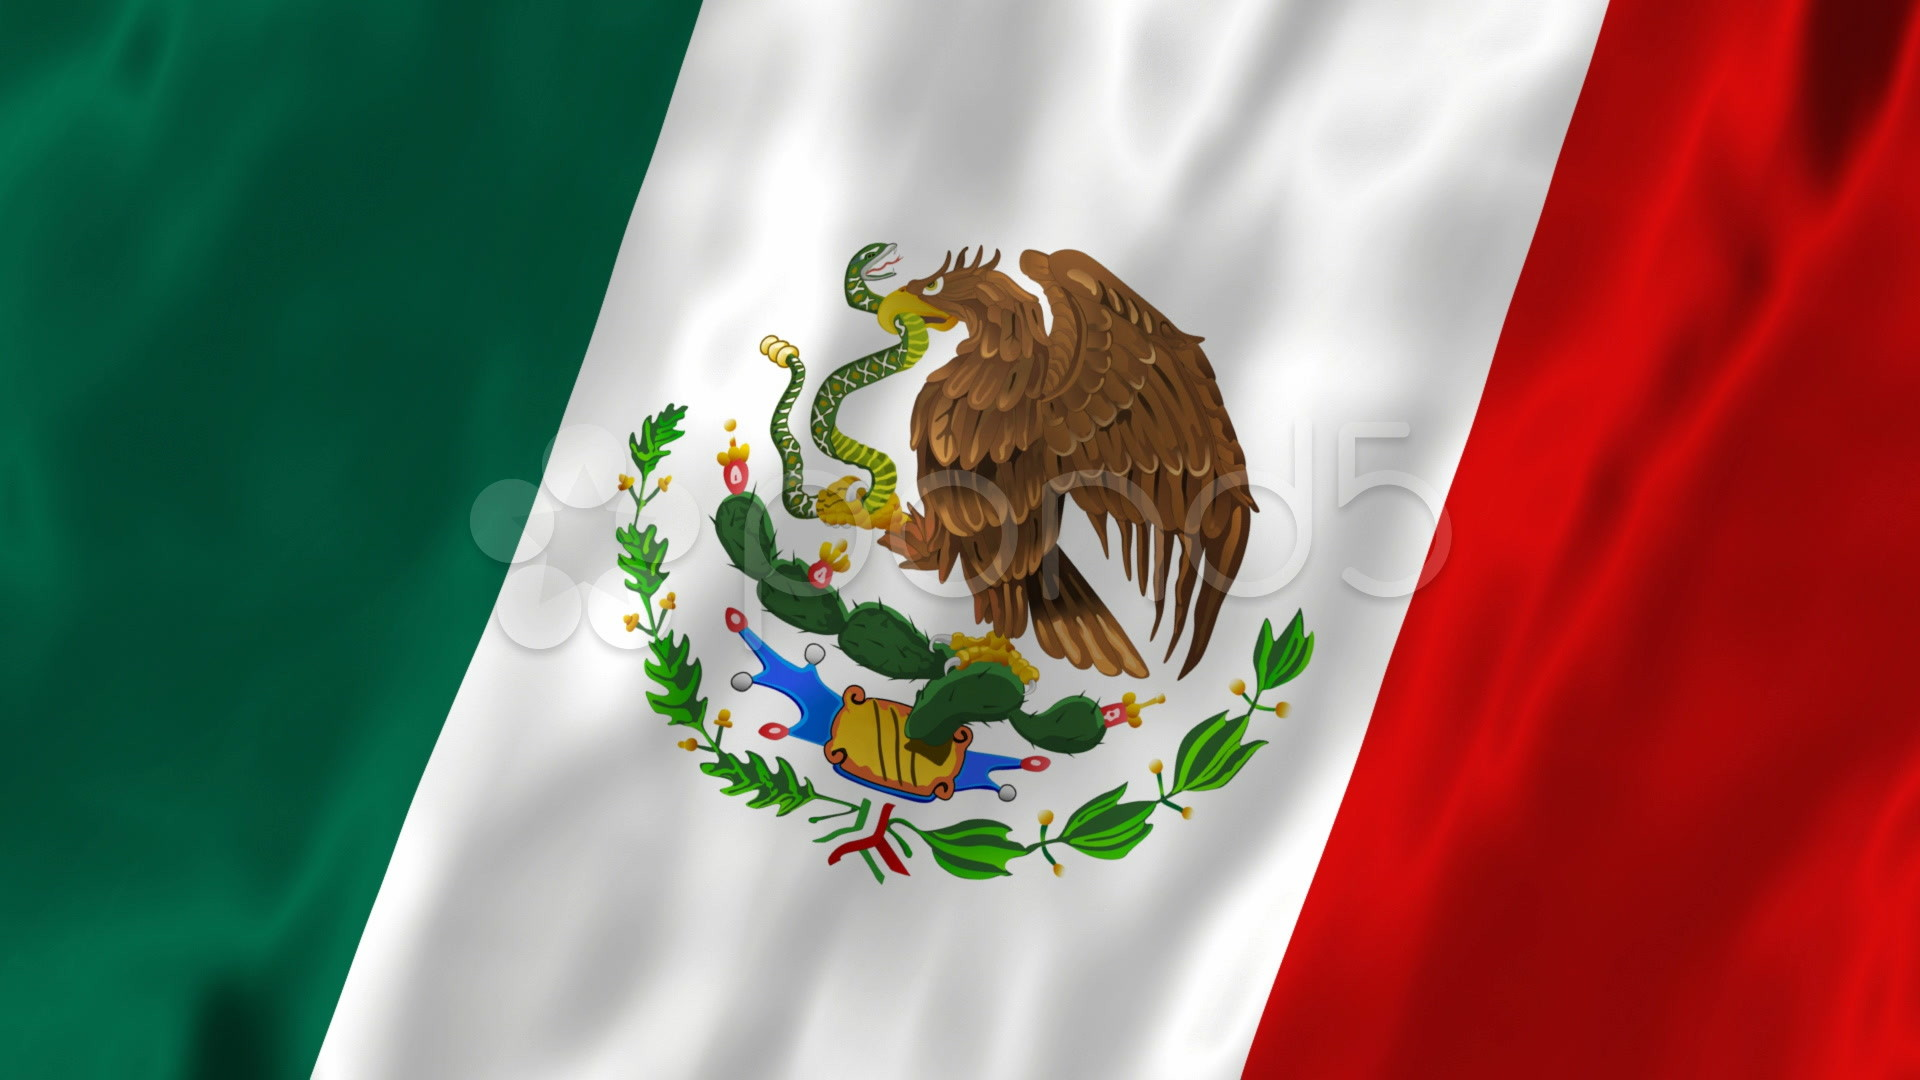 1920x1080 mexico flag - Free Large Images | Download Wallpaper | Pinterest | Mexico  flag and Wallpaper